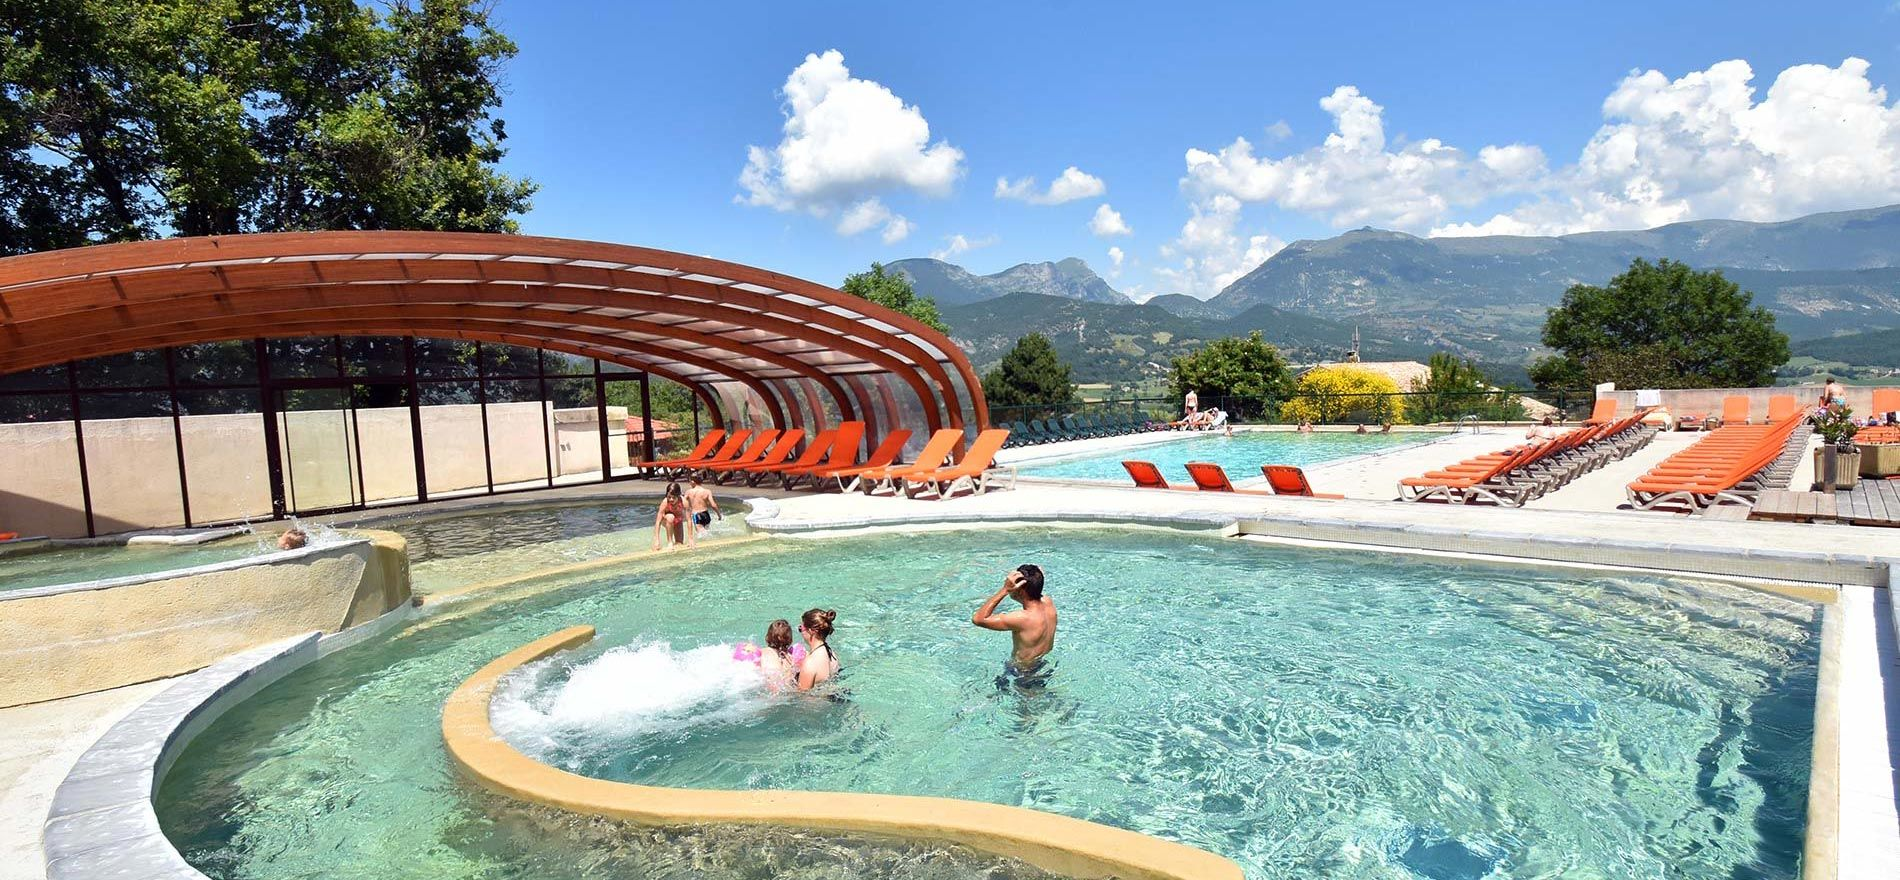 Camping le couspeau camping rh ne alpes 4 toiles for Camping cabourg avec piscine